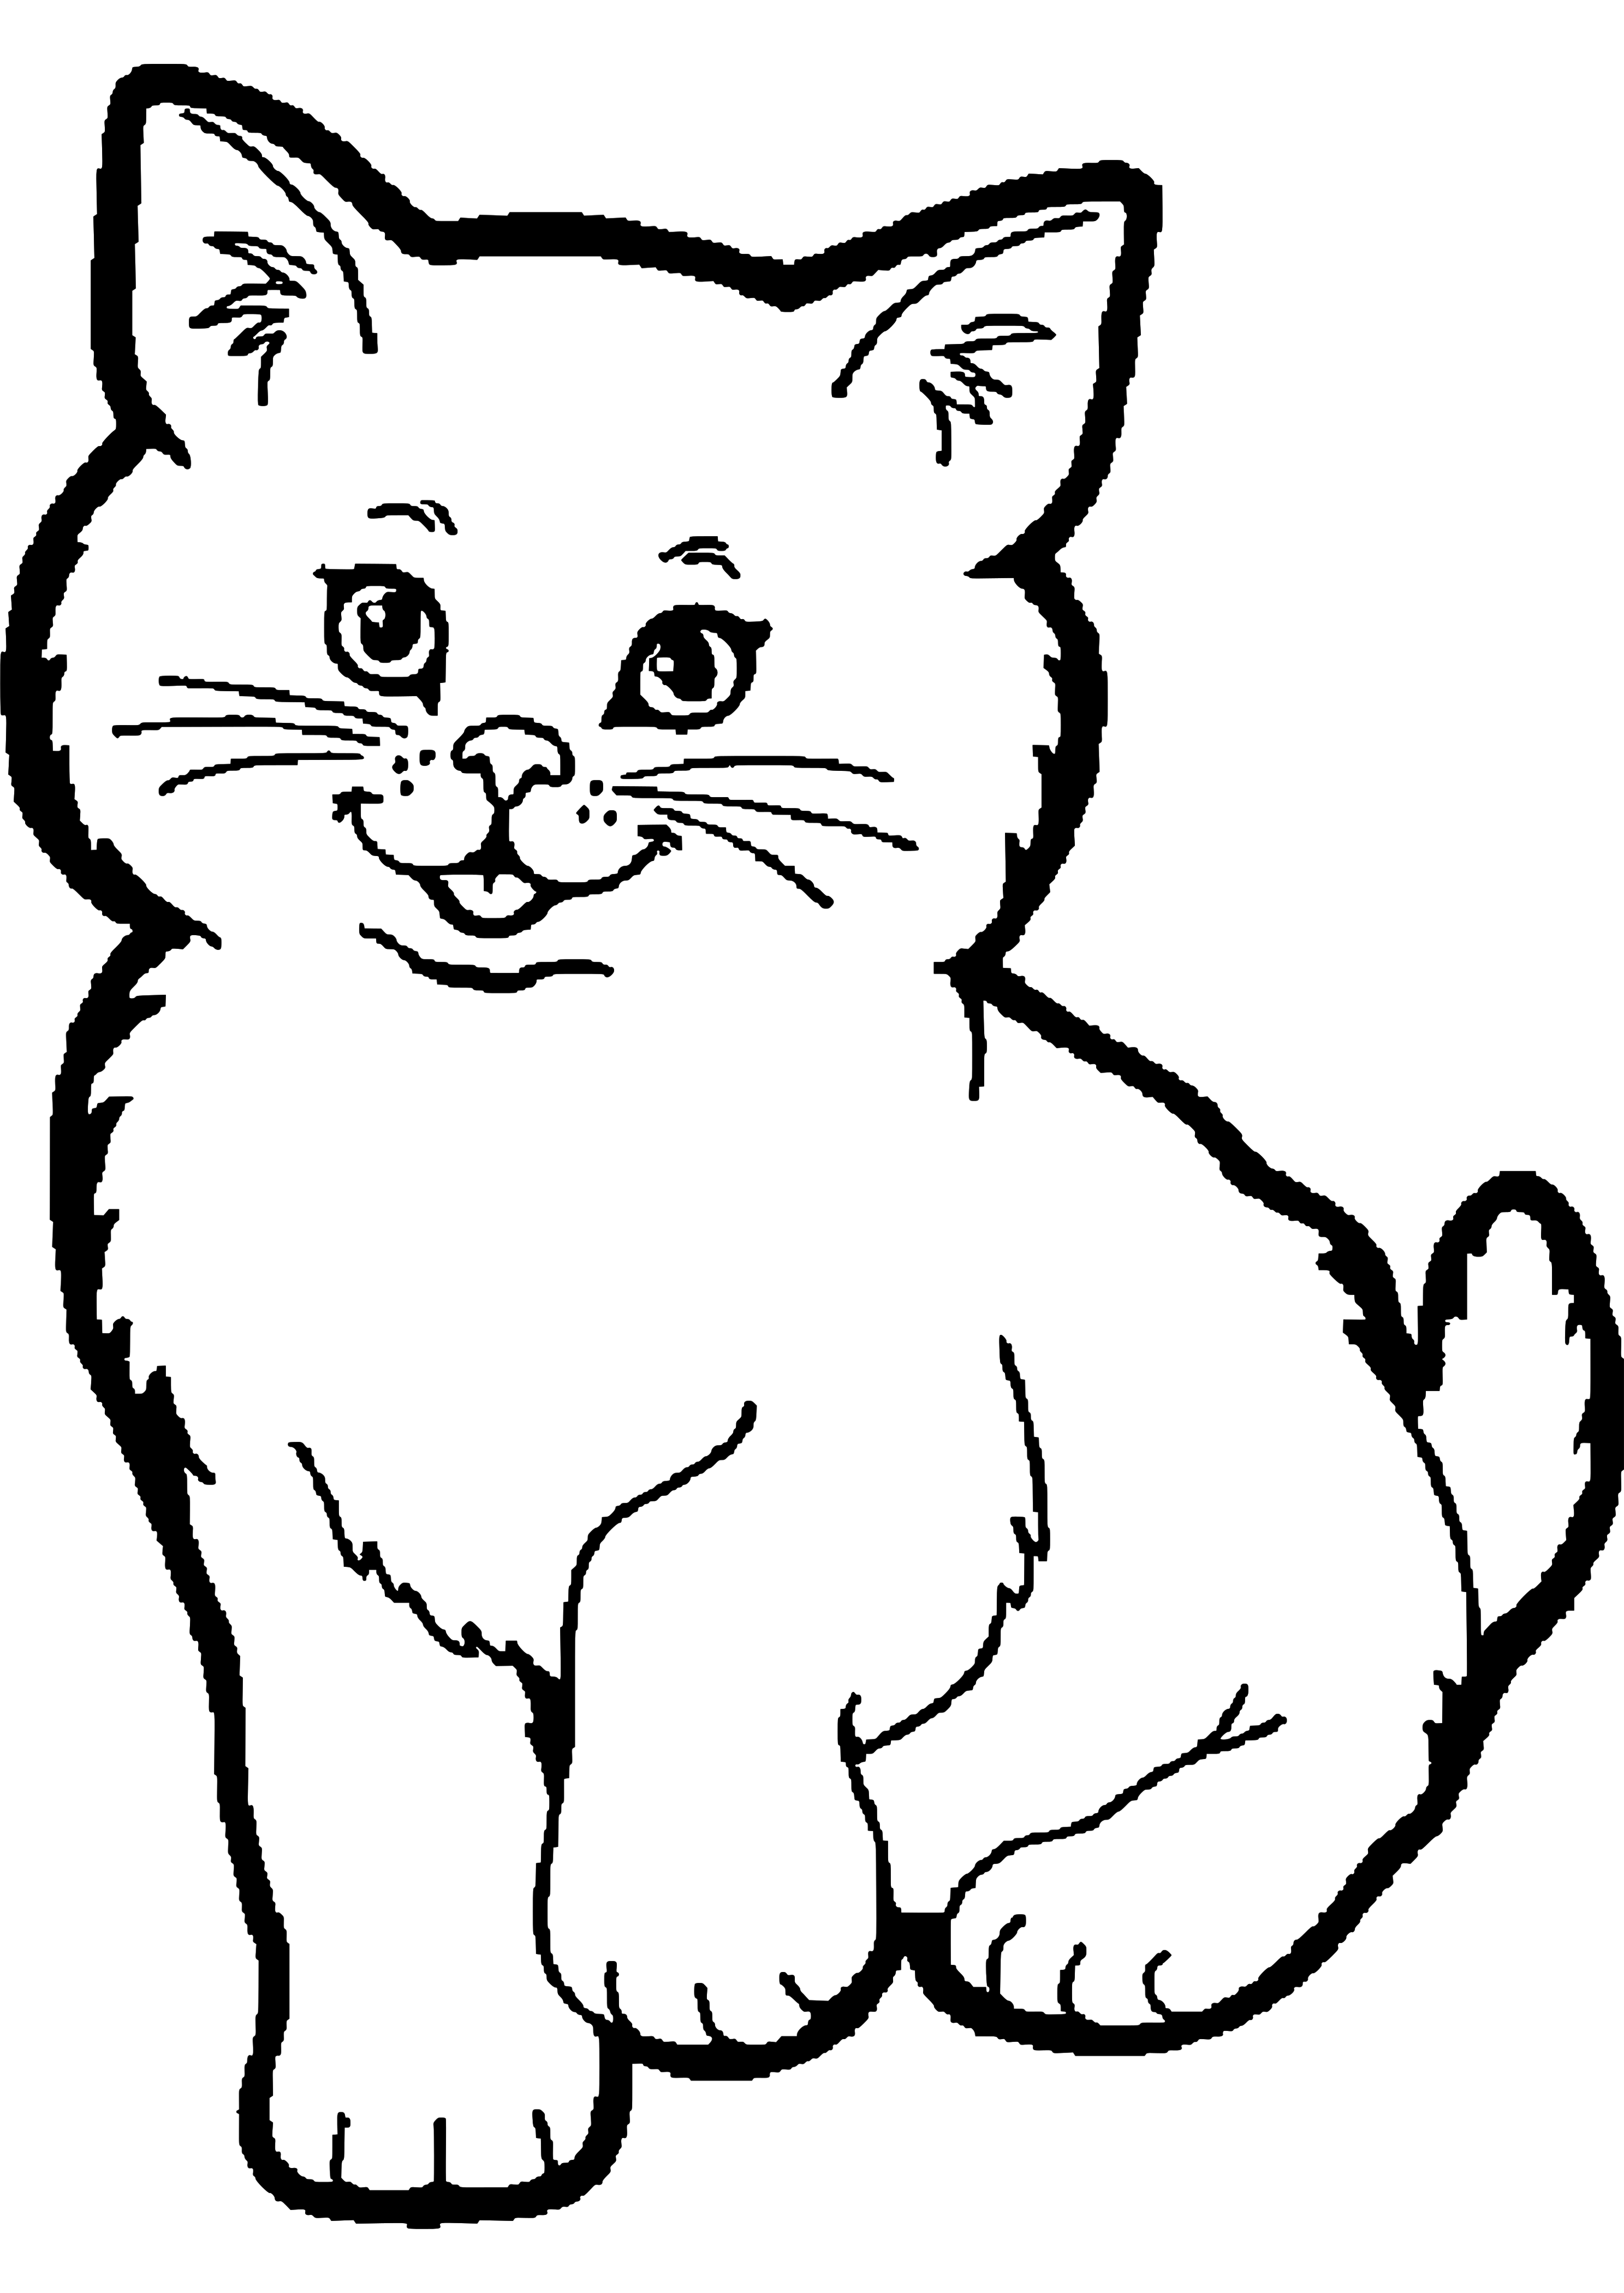 J coloring pages printable - J Ai Plac Ce Chat Dans Mon Dessin Car Je Souhaitais Faire En Sorte Animal Coloring Pagescoloring